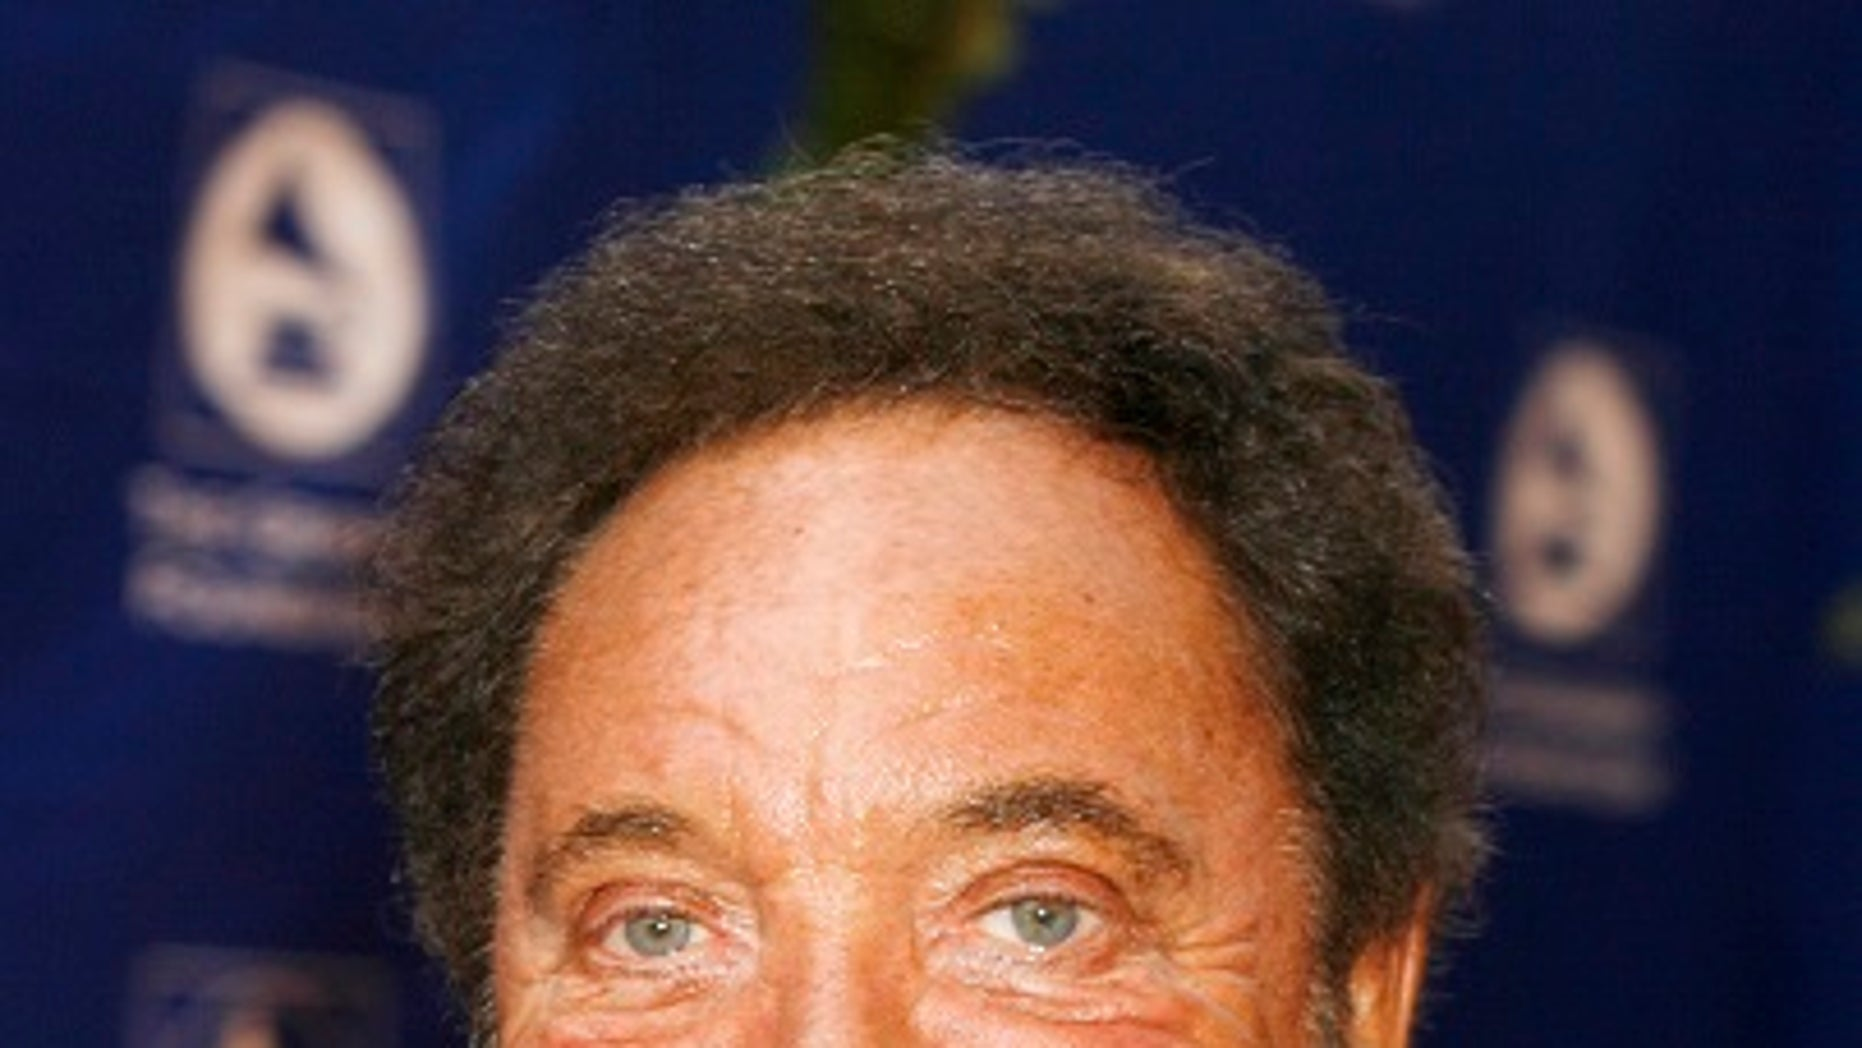 Welsh crooner Sir Tom Jones said sexual harassment and abuse was common in the music industry and experienced the misconduct early in his career.